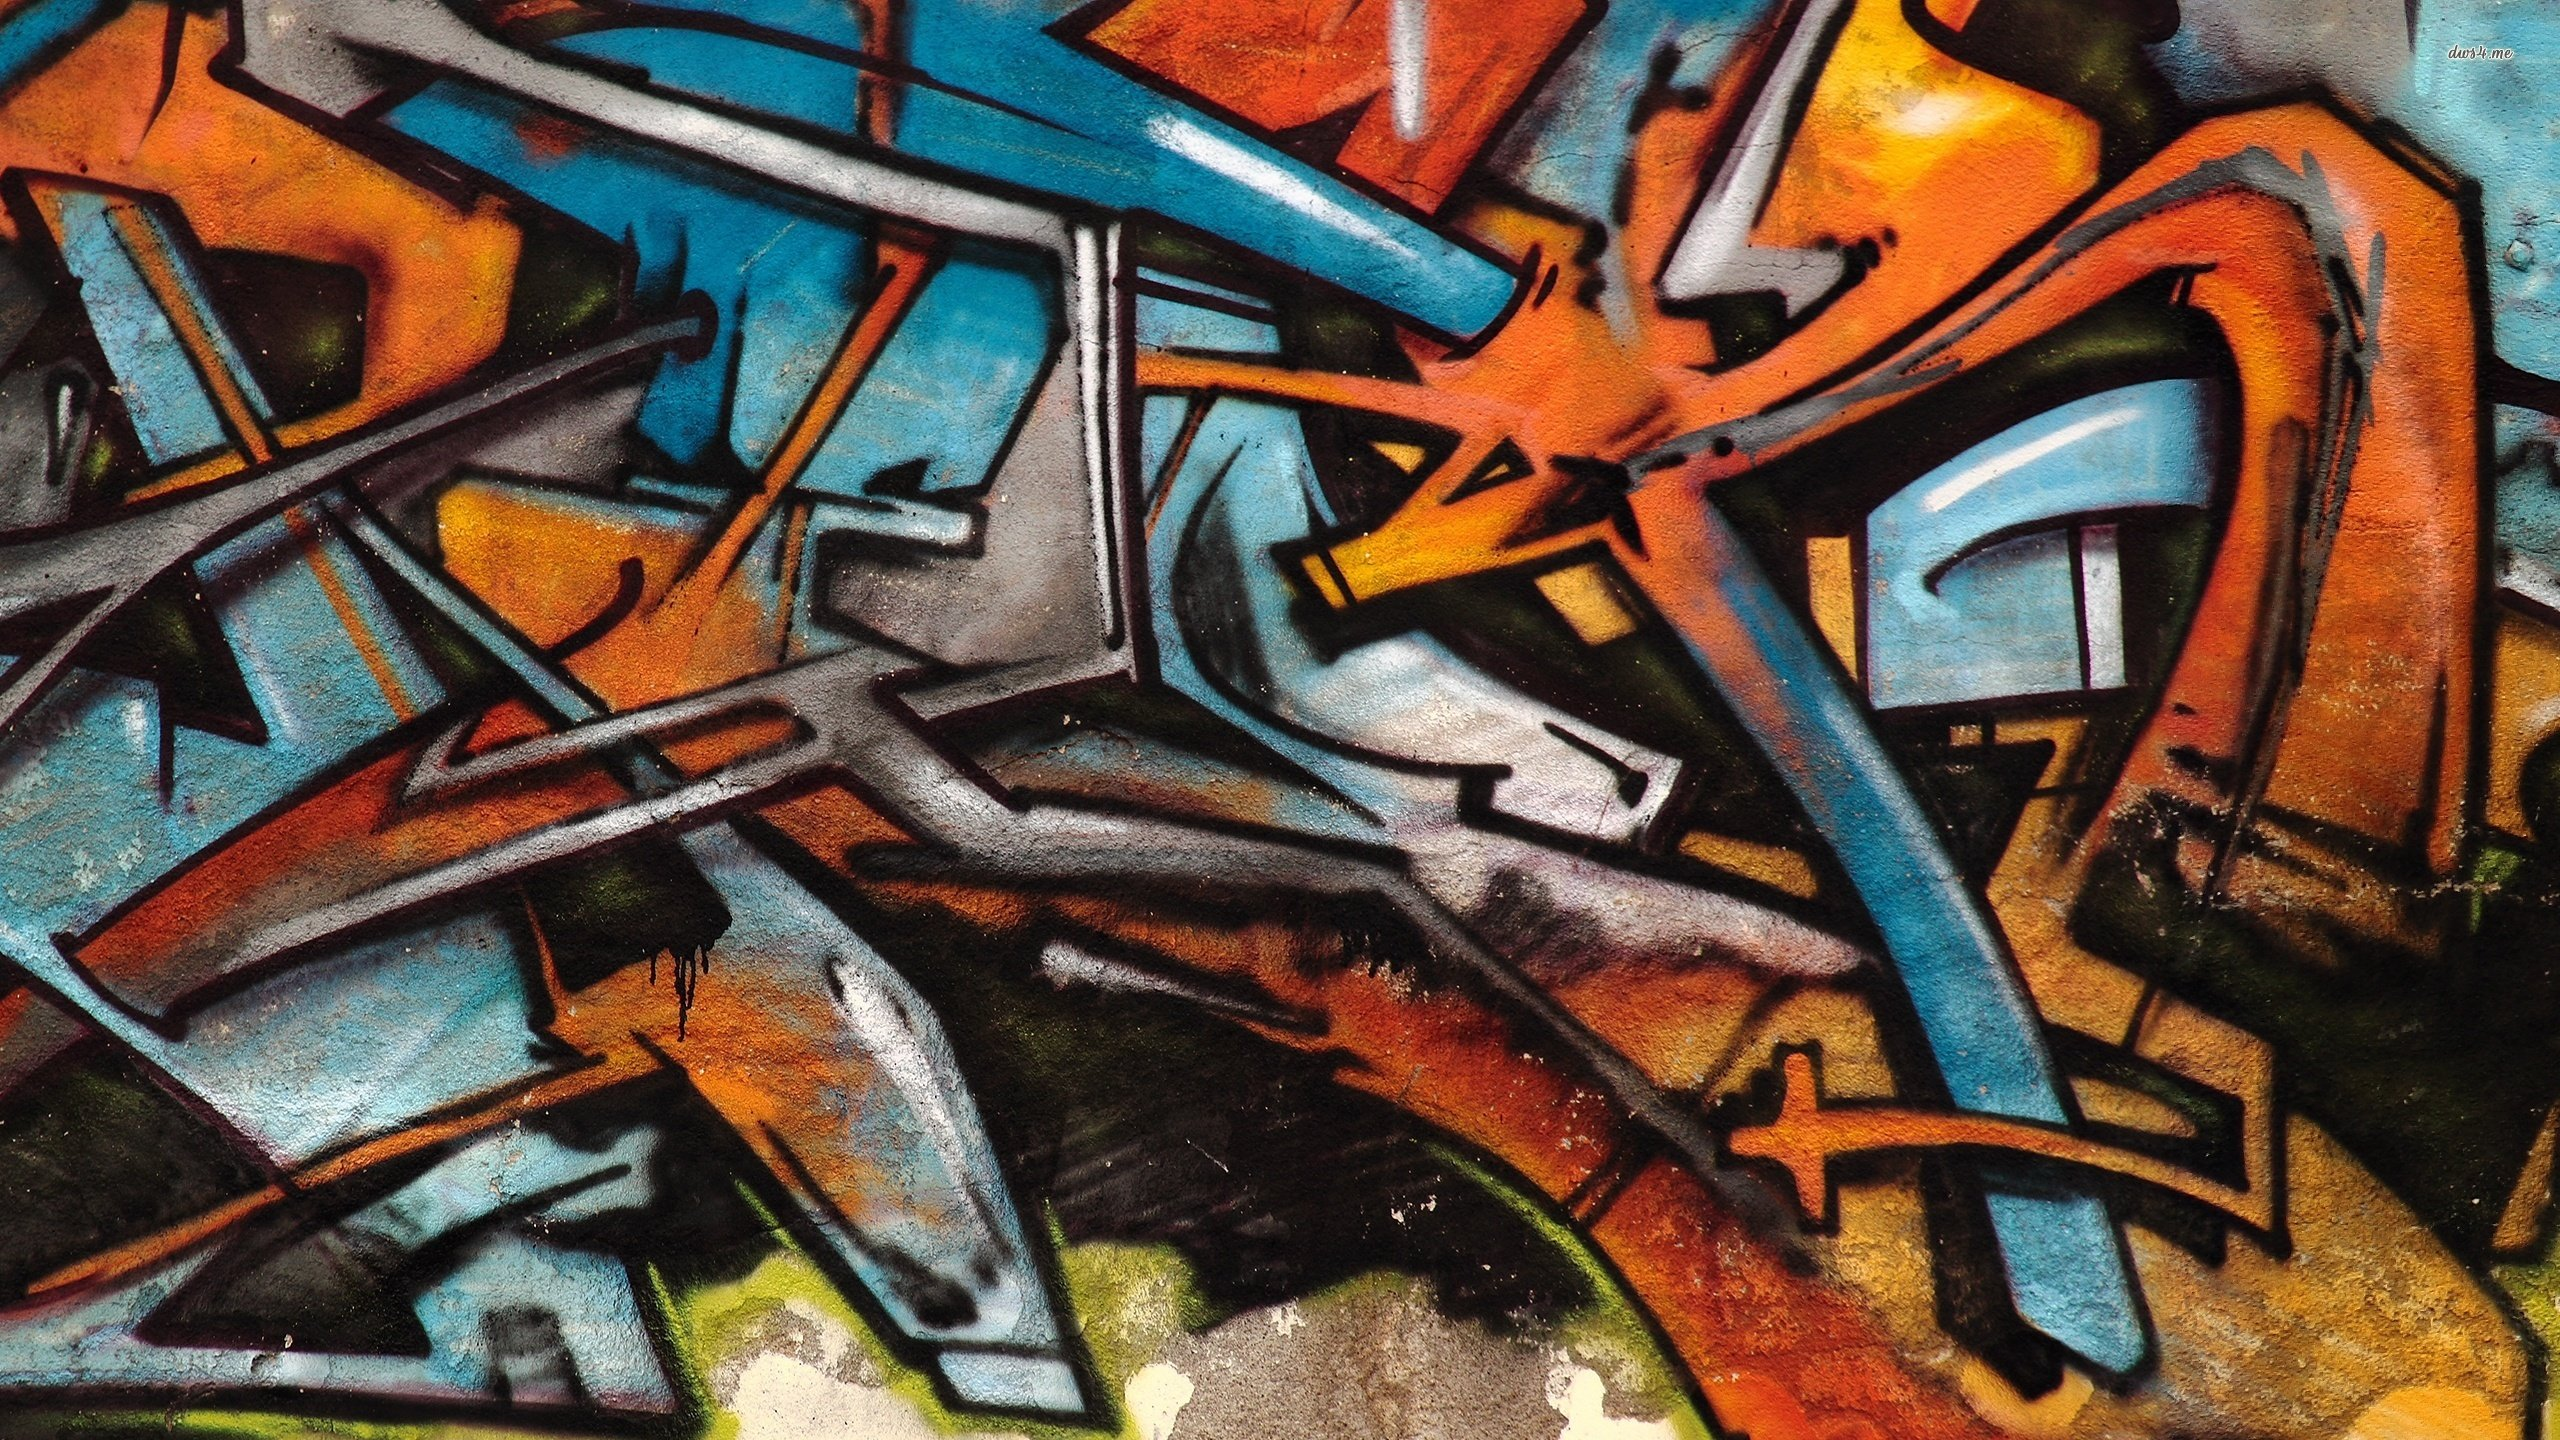 Graffiti Wallpaper Pictures HD Images Free APK download rh